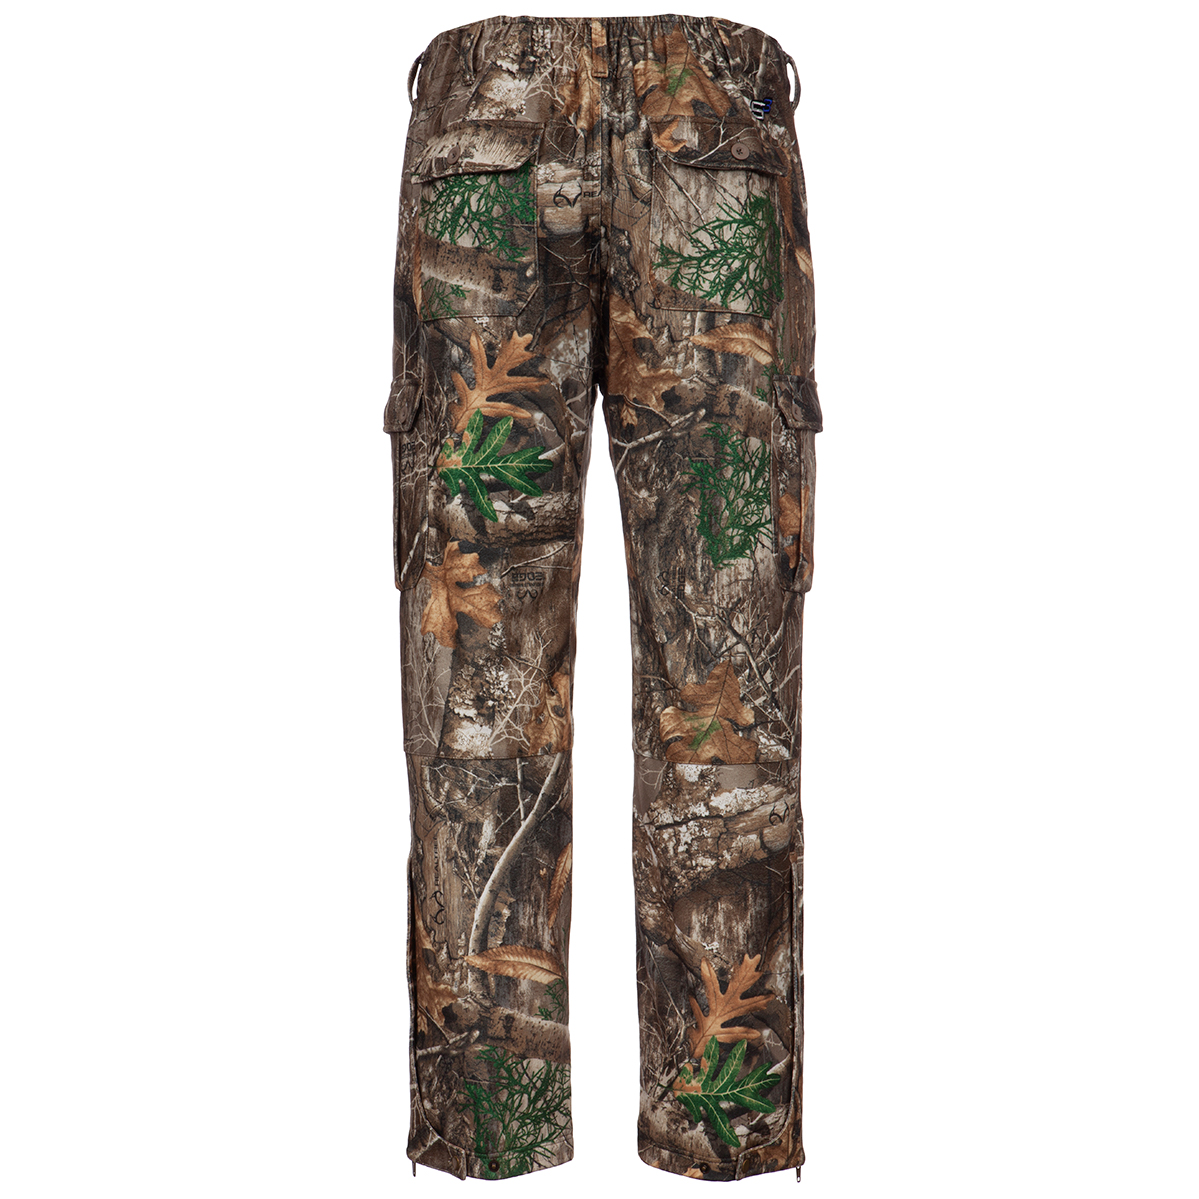 Scent-Blocker-Wooltex-Windproof-Insulated-Pant-Big-Tall-Hunt-BigCamo-Back